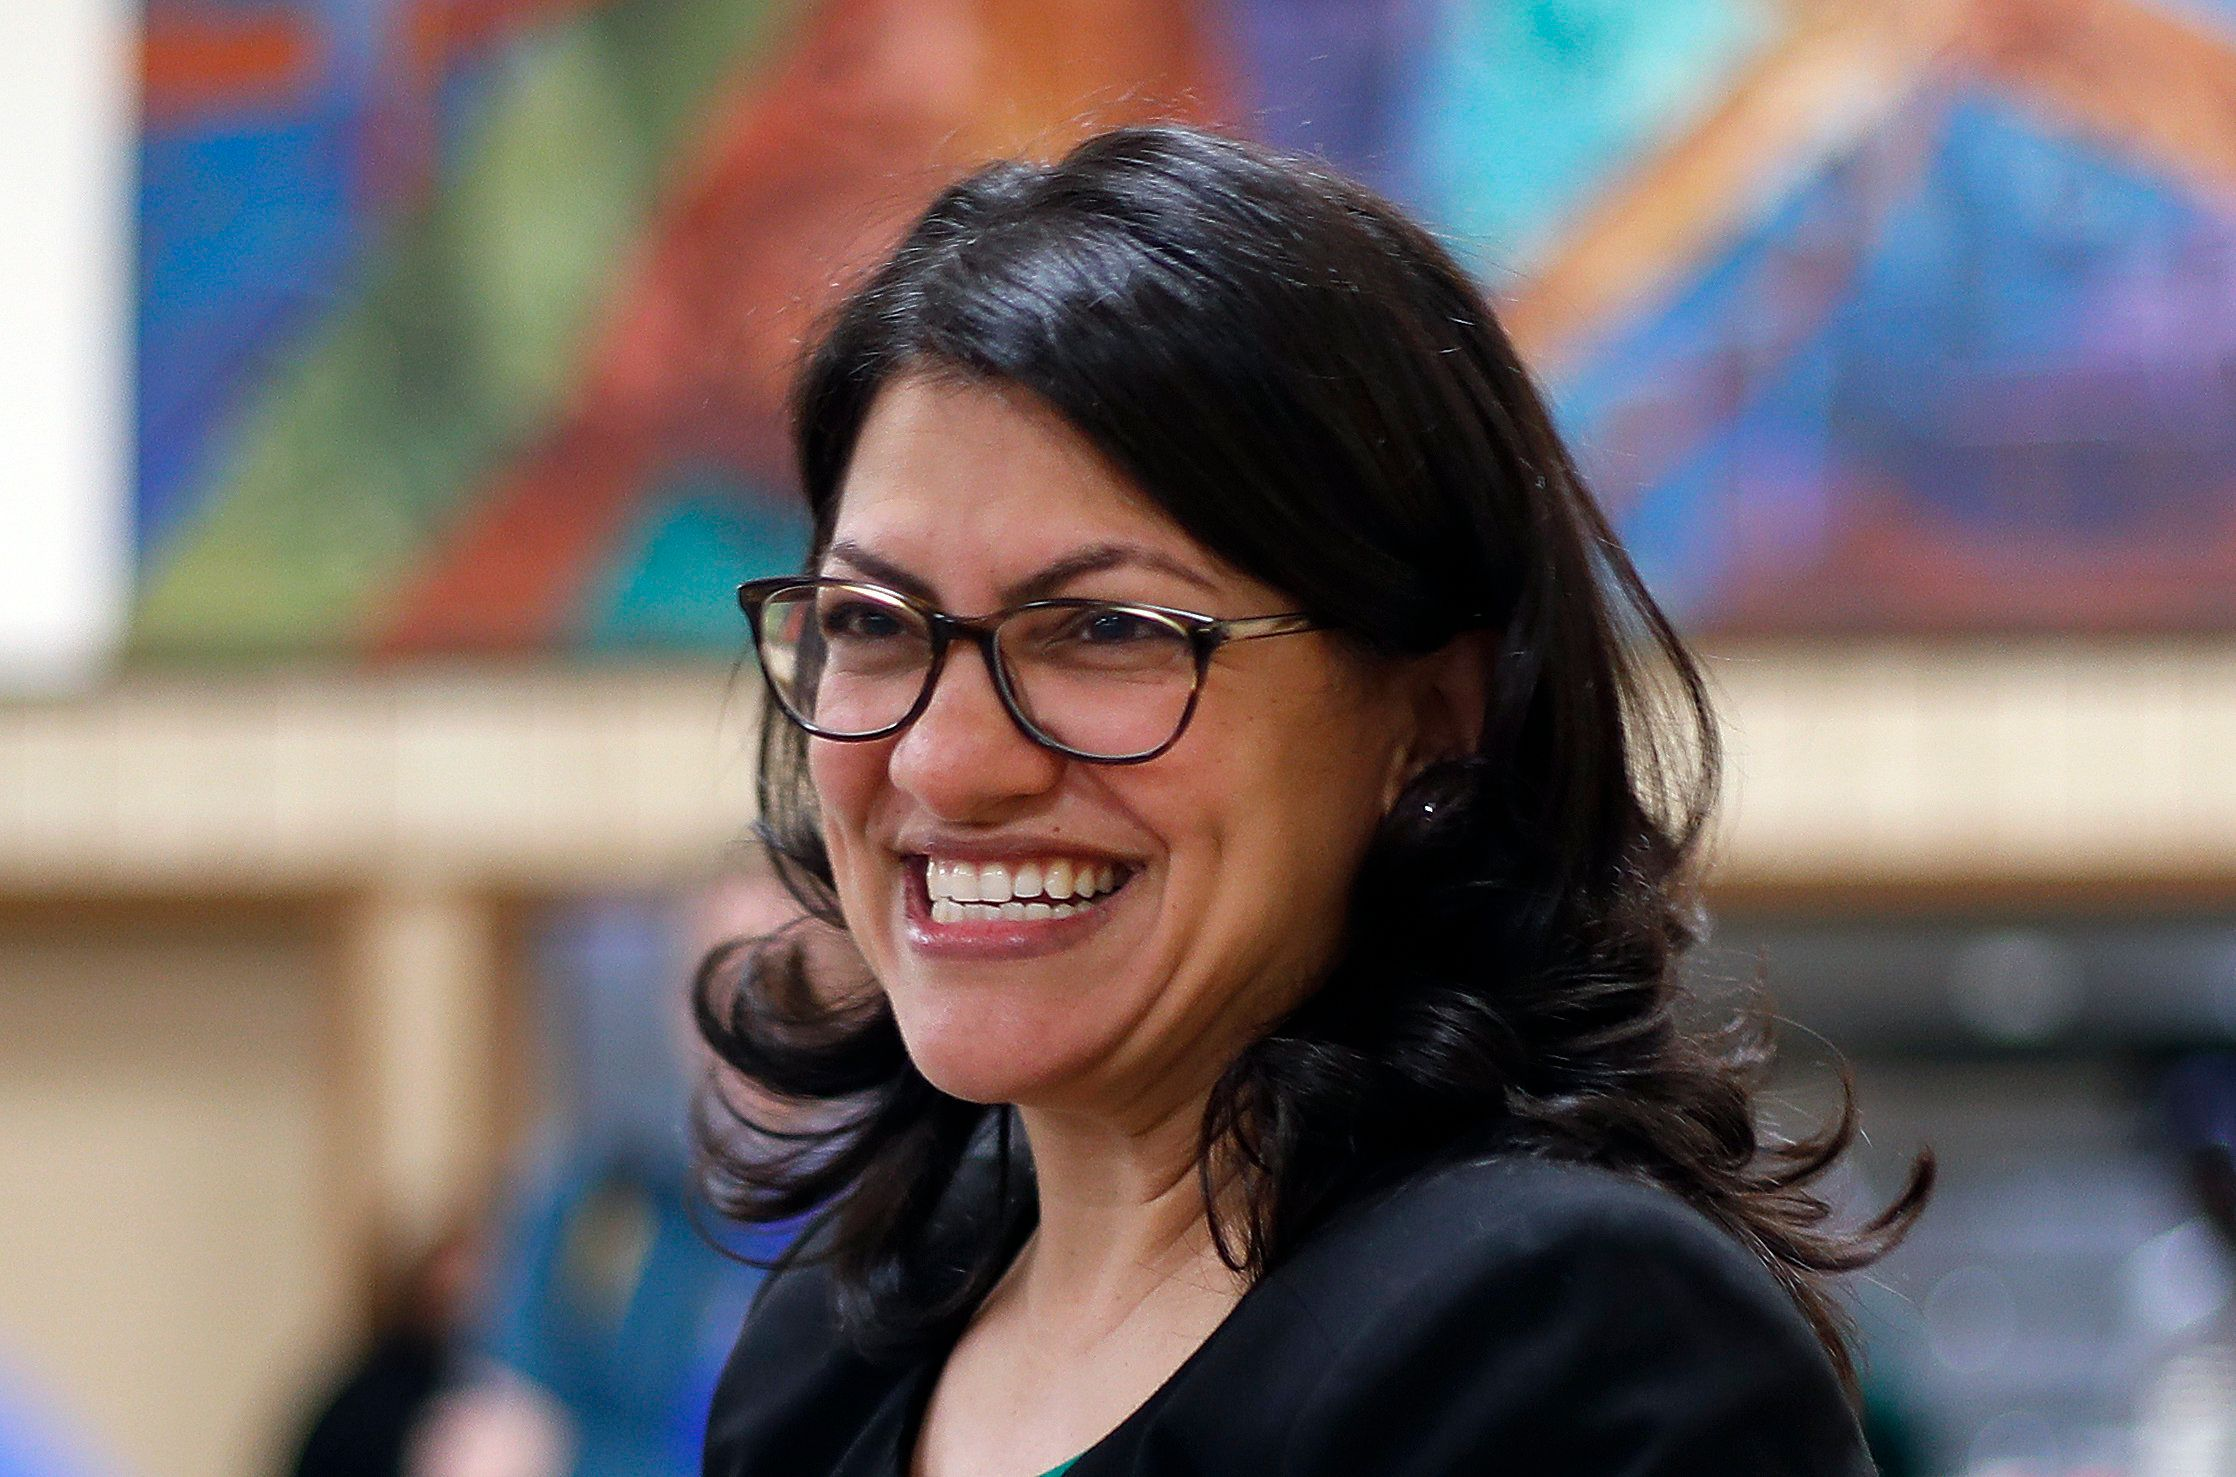 Rashida Tlaib smiles during a rally in Dearborn, Michigan, in October. The representative-elect said she plans to wear a Pale